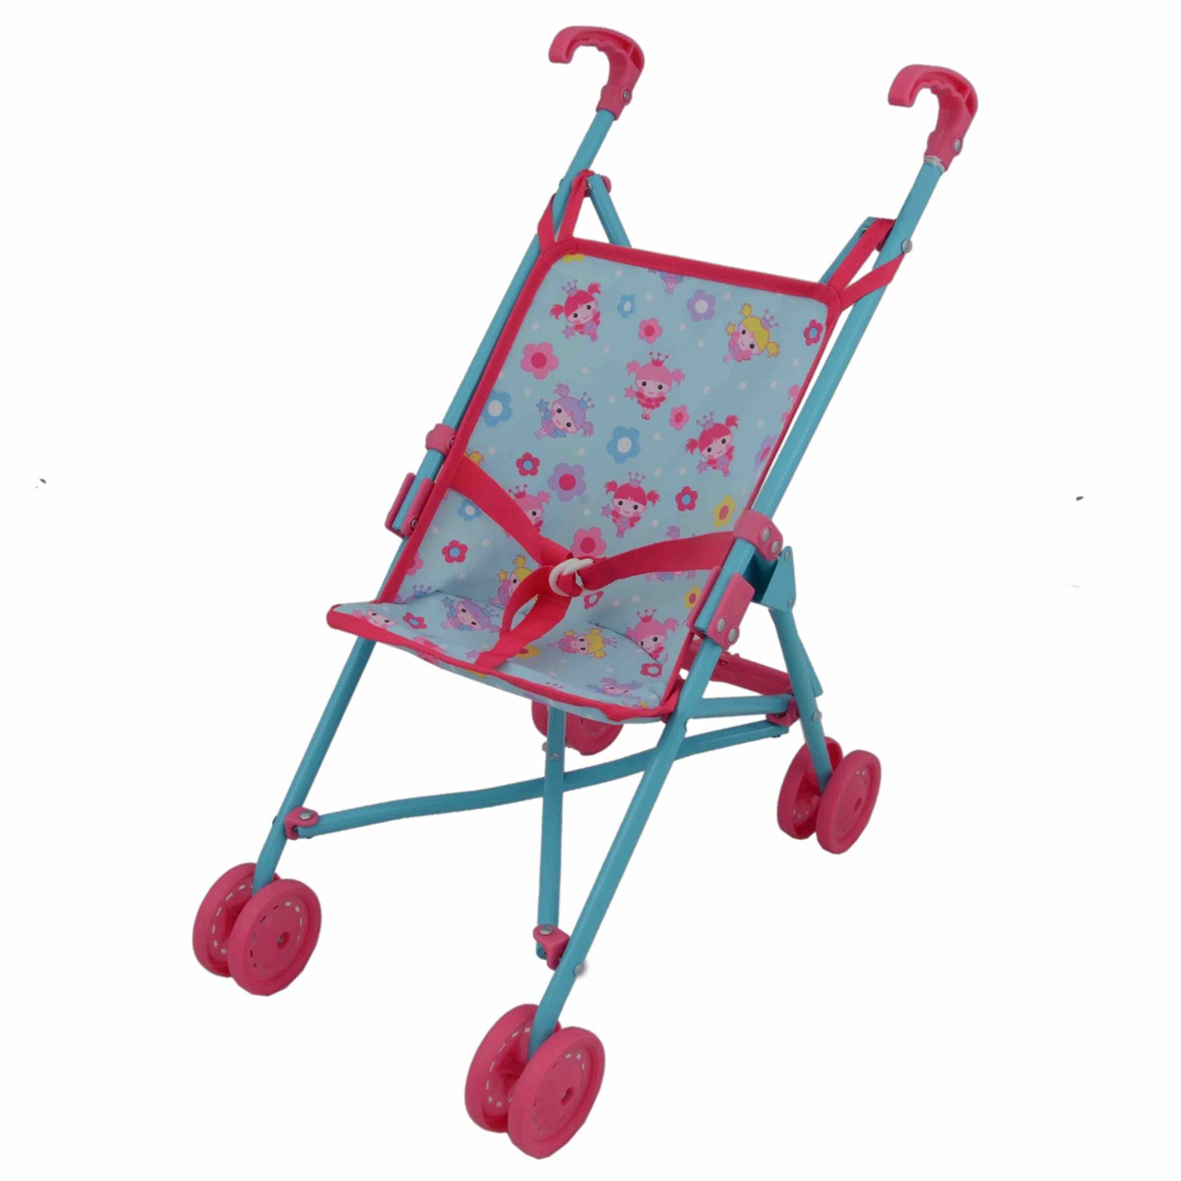 DOLL'S WORLD STROLLER